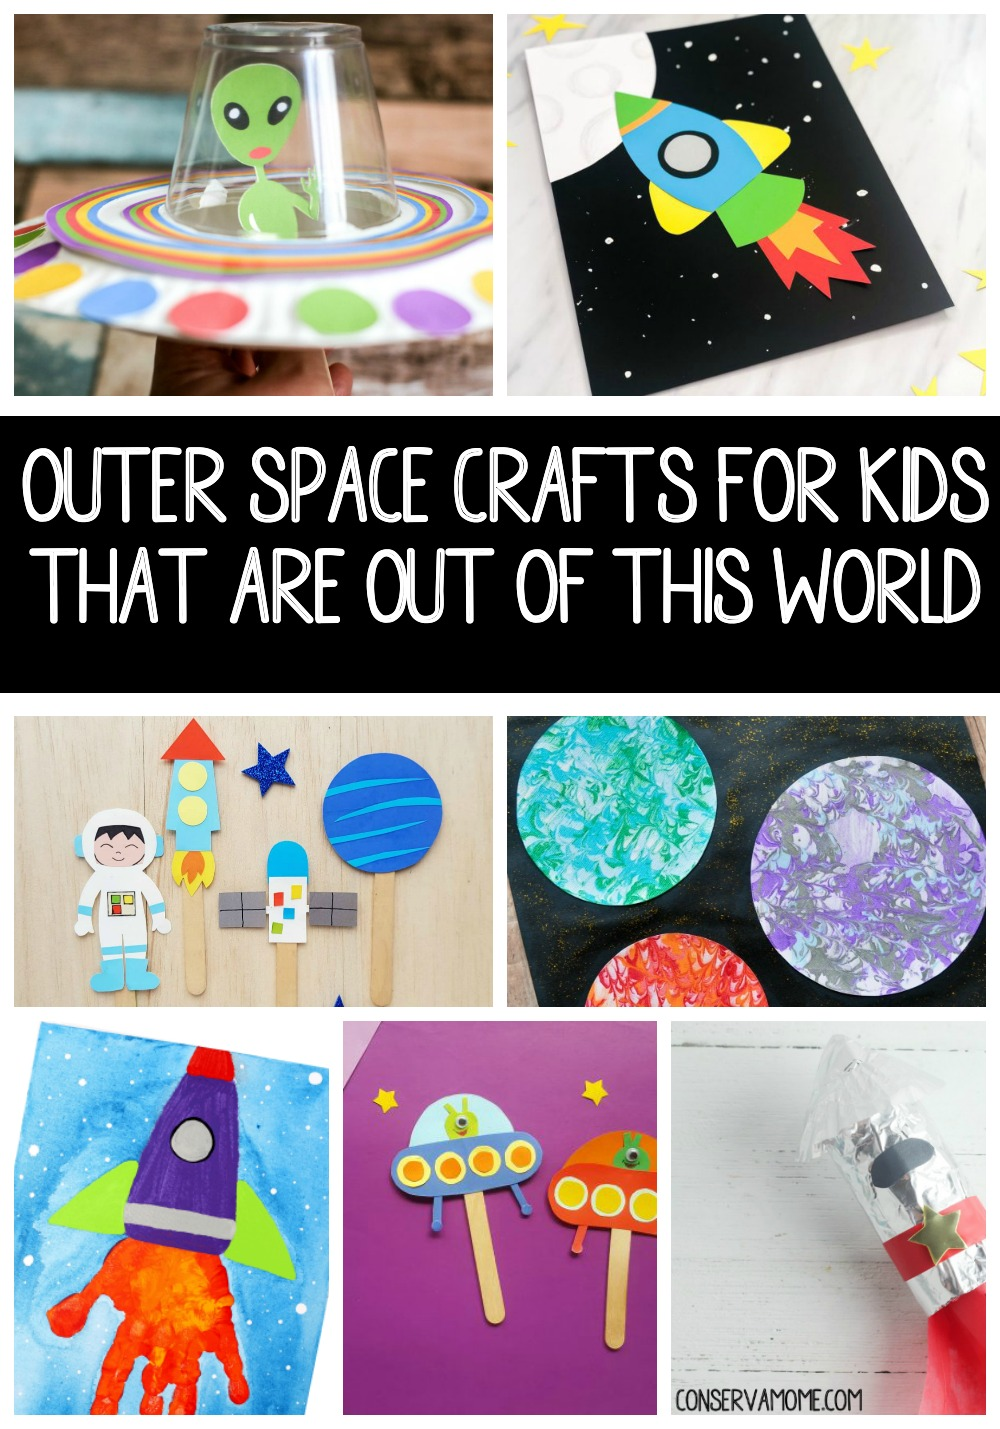 Outer Space Crafts for Kids That are Out of this World